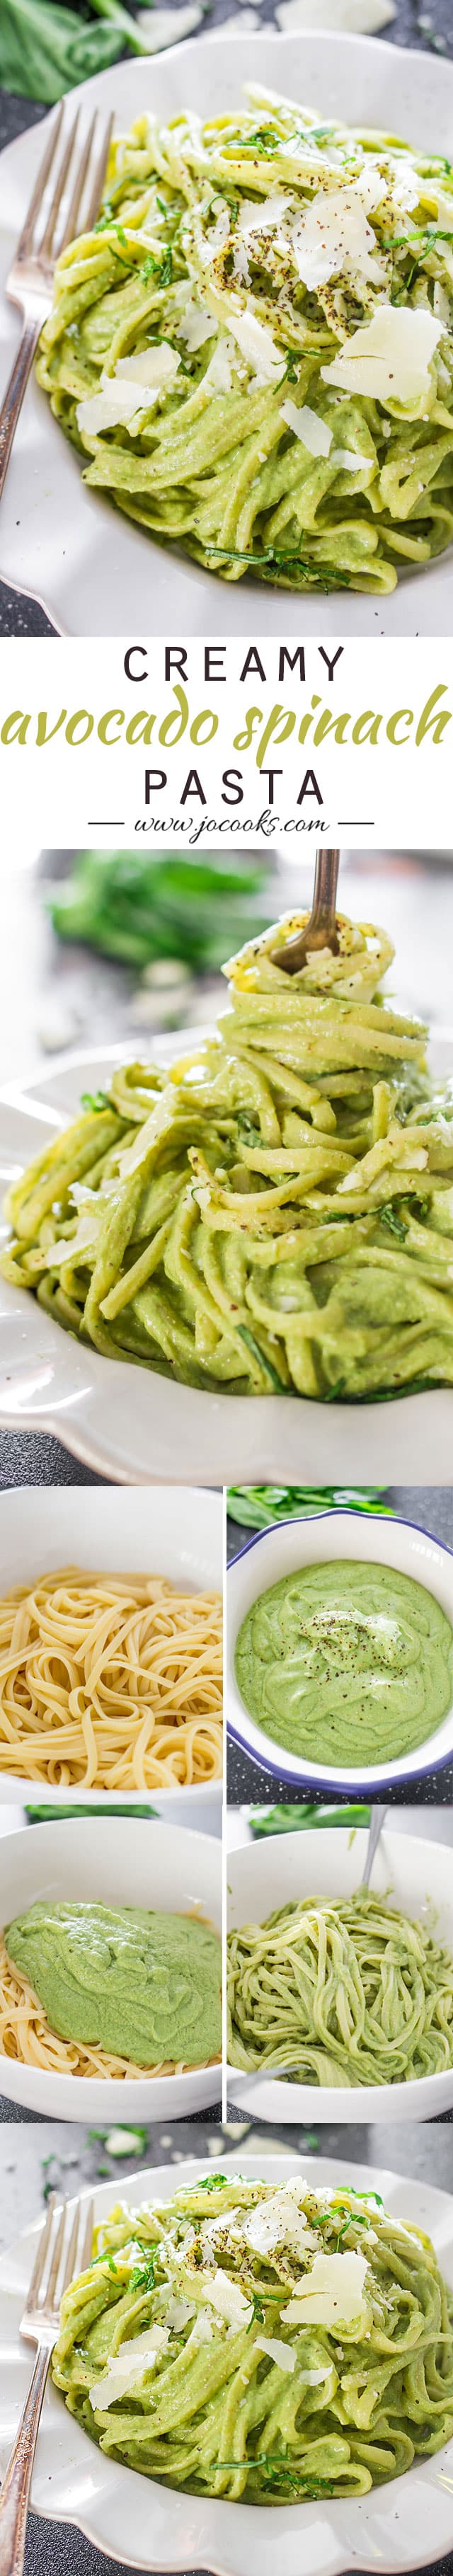 avocado-and-spinach-pasta-collage